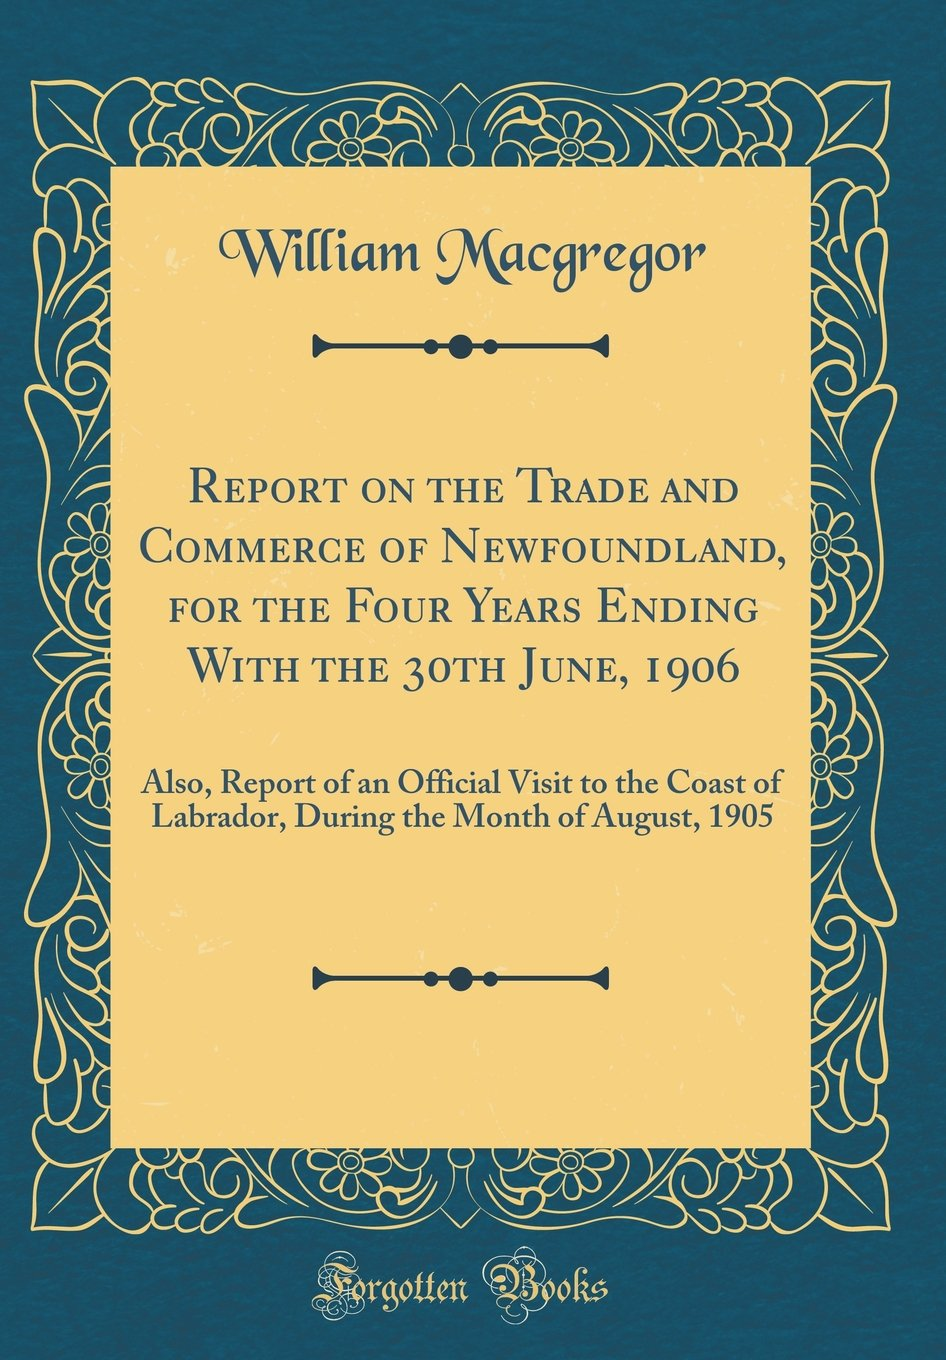 Download Report on the Trade and Commerce of Newfoundland, for the Four Years Ending with the 30th June, 1906: Also, Report of an Official Visit to the Coast ... the Month of August, 1905 (Classic Reprint) PDF